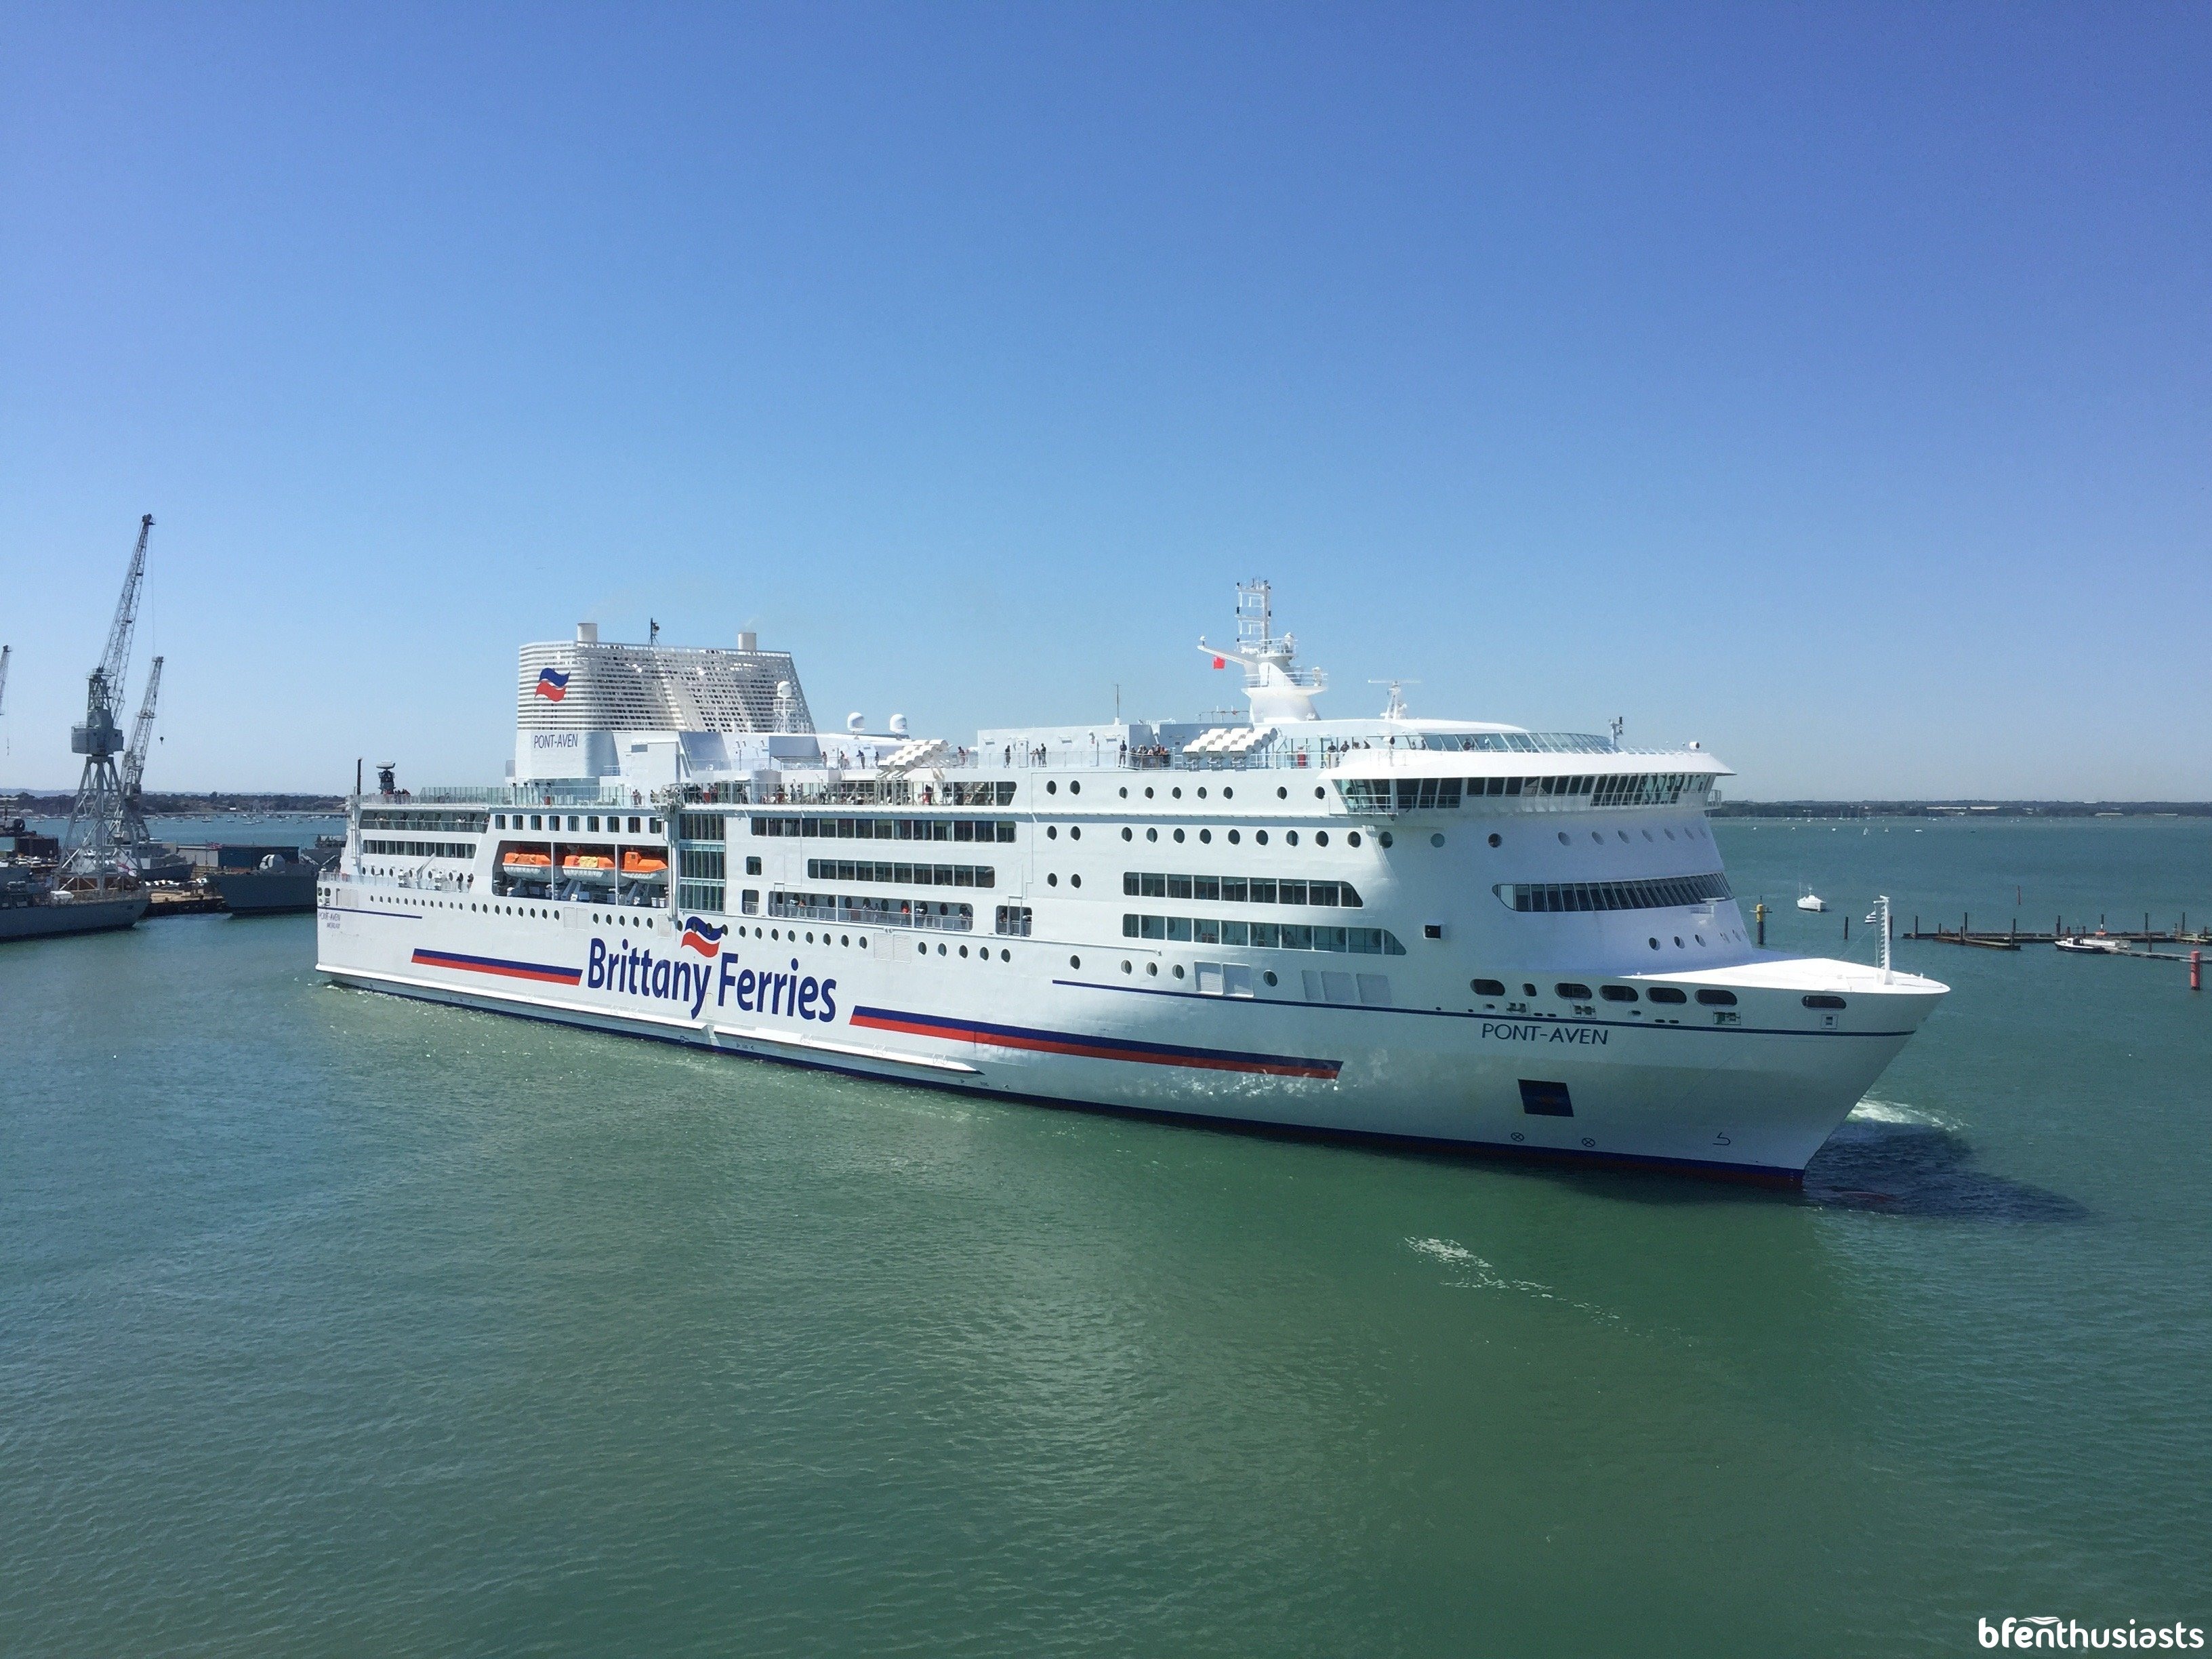 Pont-Aven arriving in Portsmouth - June '17